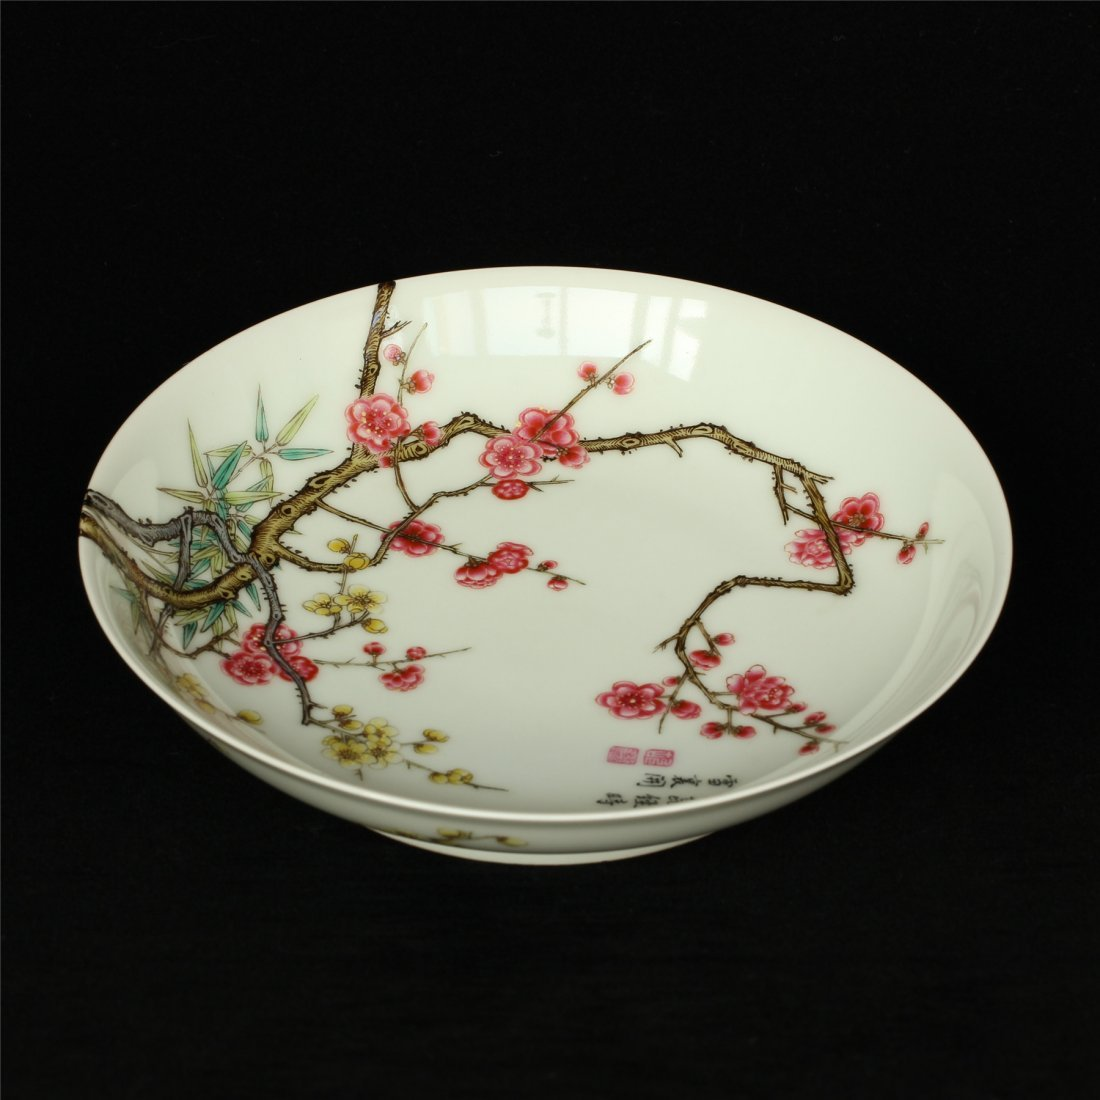 Famille rose porcelain plate of Qing Dynasty YongZheng - 5